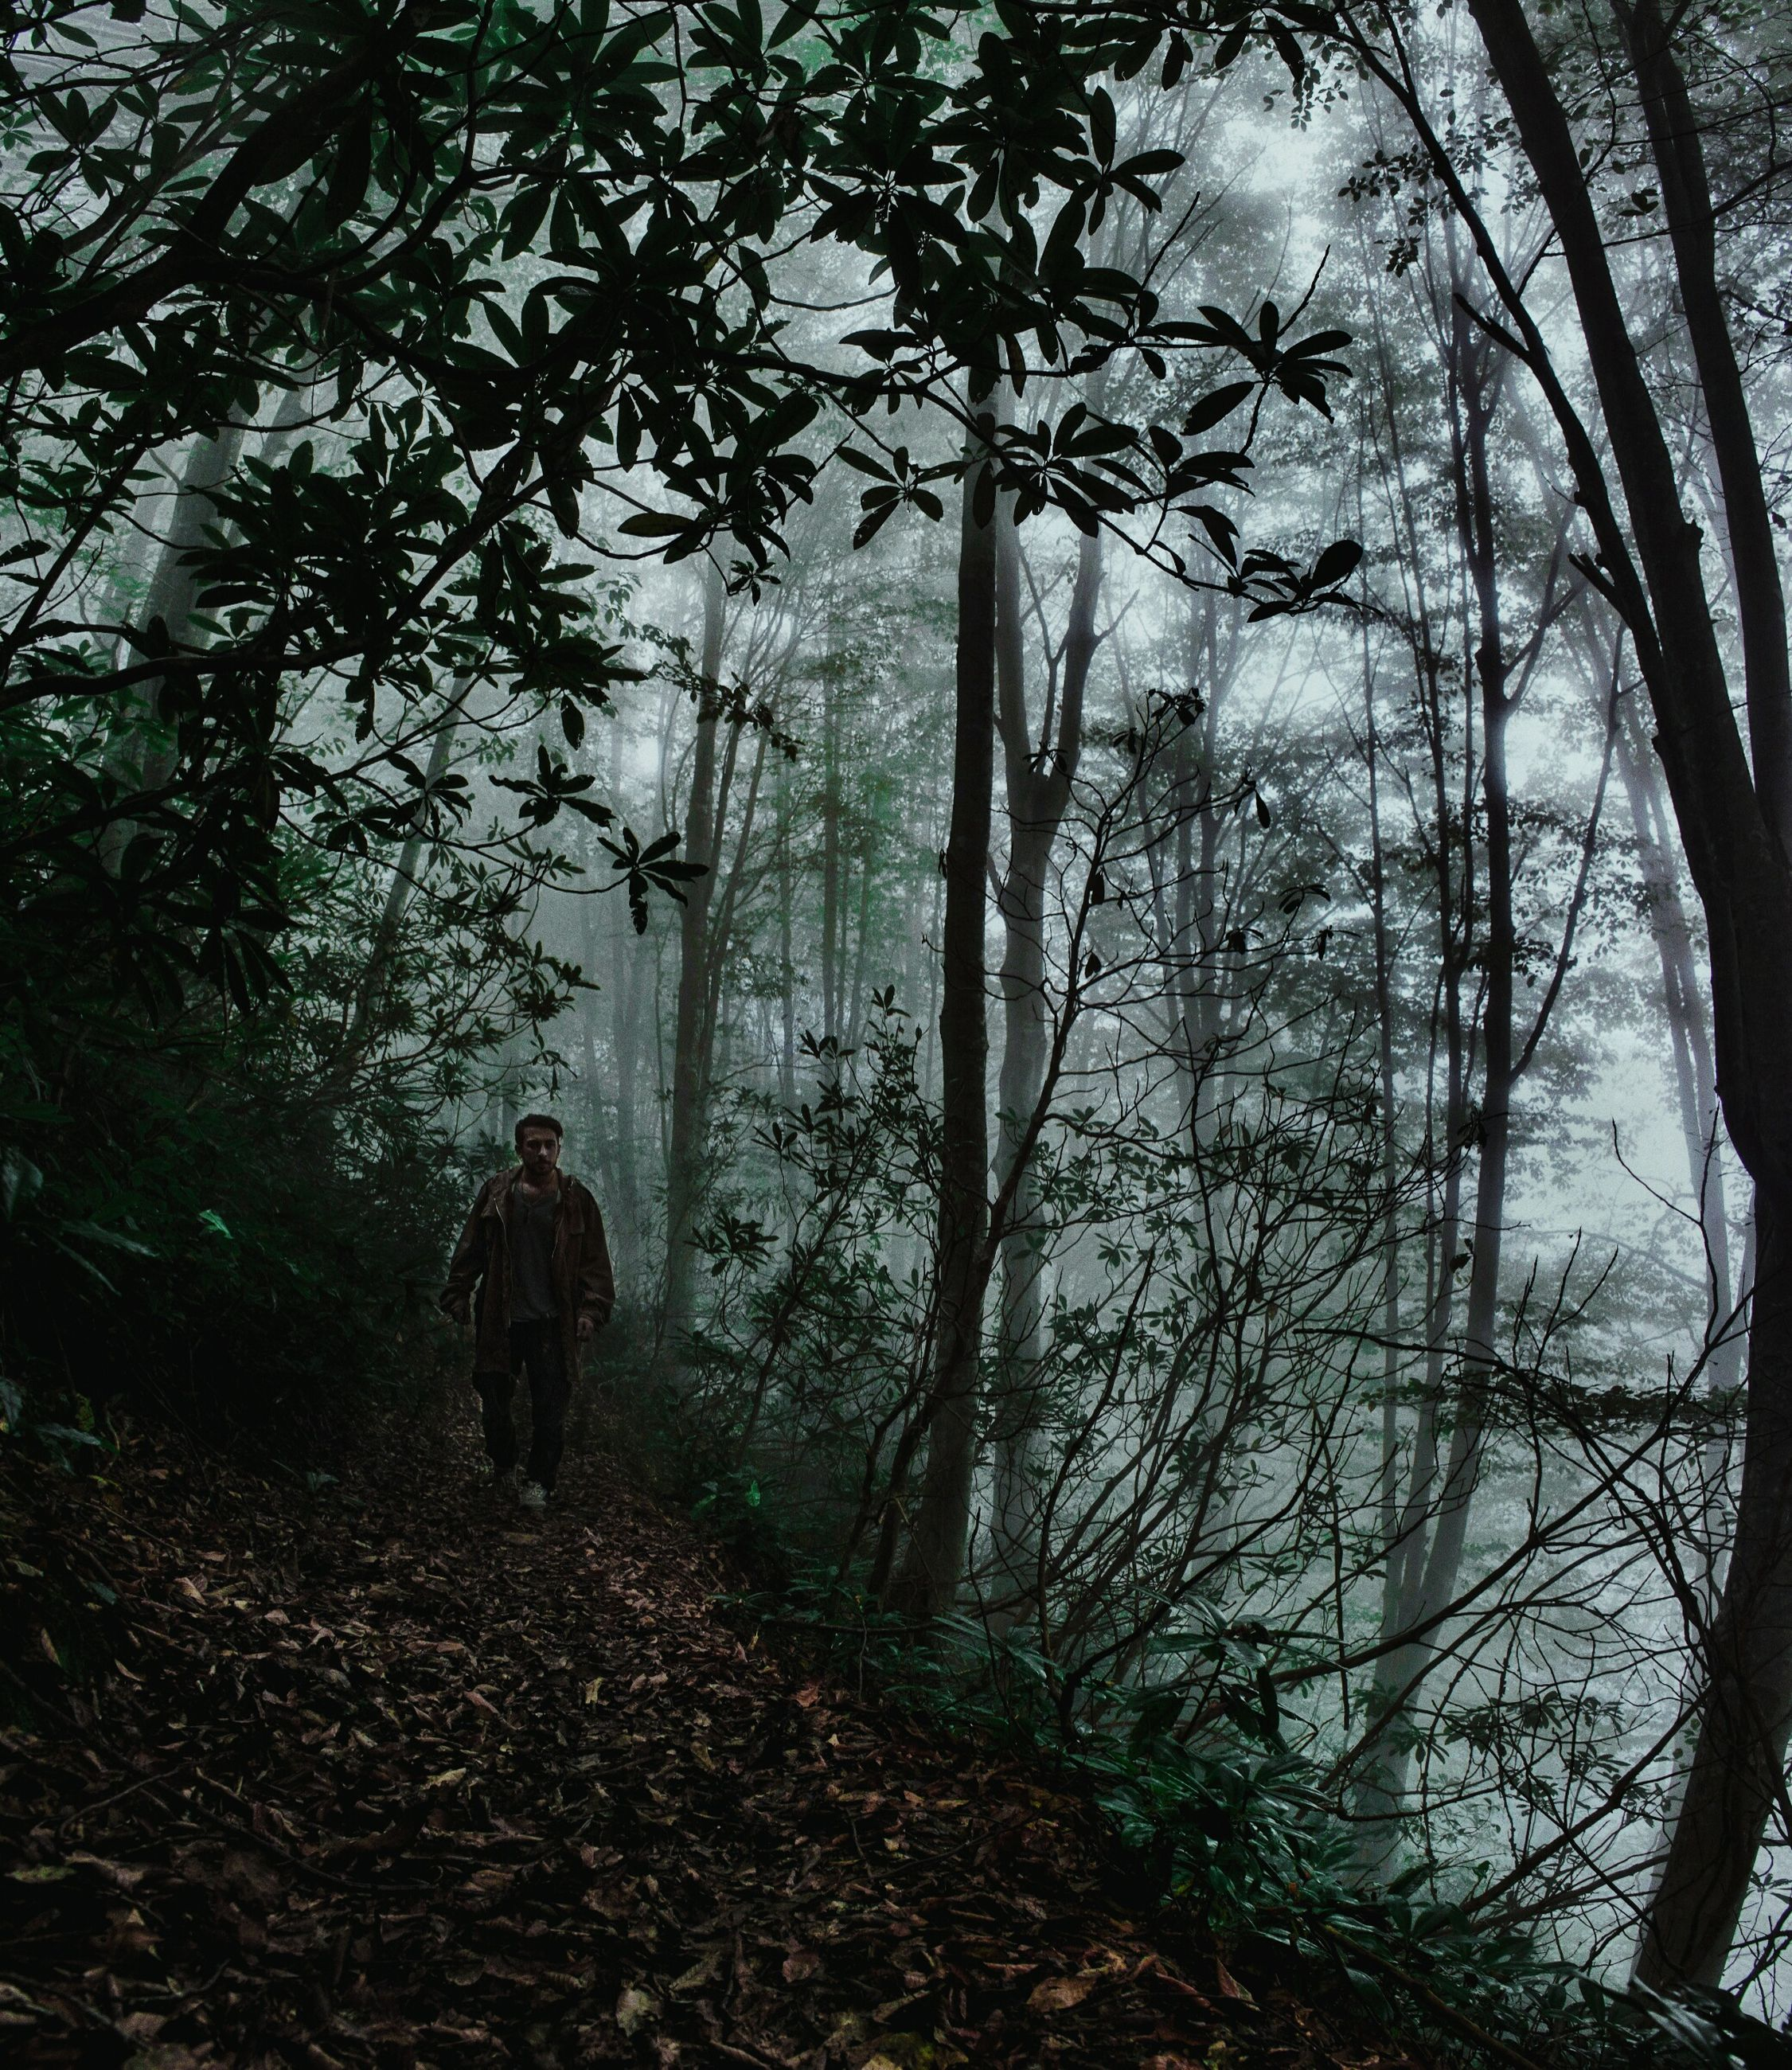 tree, full length, walking, nature, one person, silhouette, outdoors, forest, real people, fog, people, men, beauty in nature, adults only, day, landscape, one man only, only men, adult